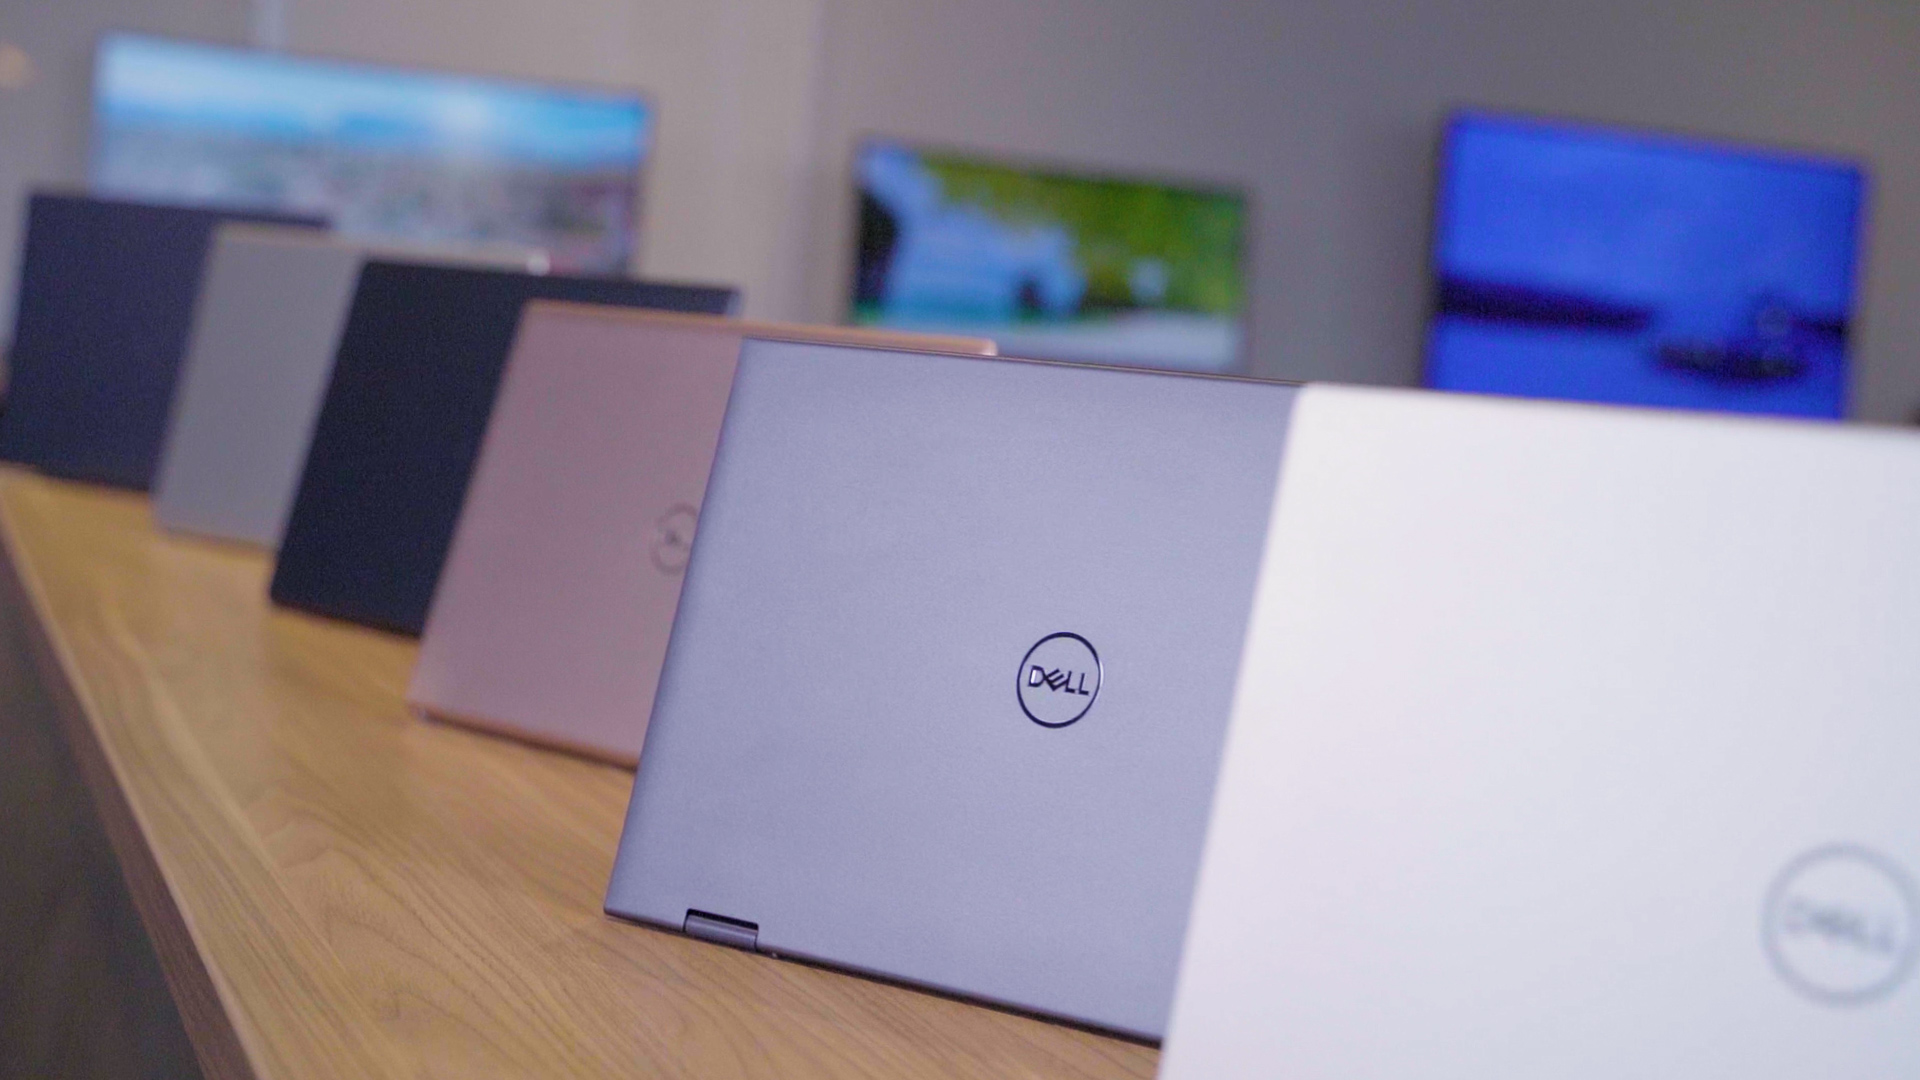 <p>Dell Inspiron redesign 2021. A closeup of the lids of six Dell Inspiron laptops laid out on a wooden table in gray, silver and copper colors.</p>